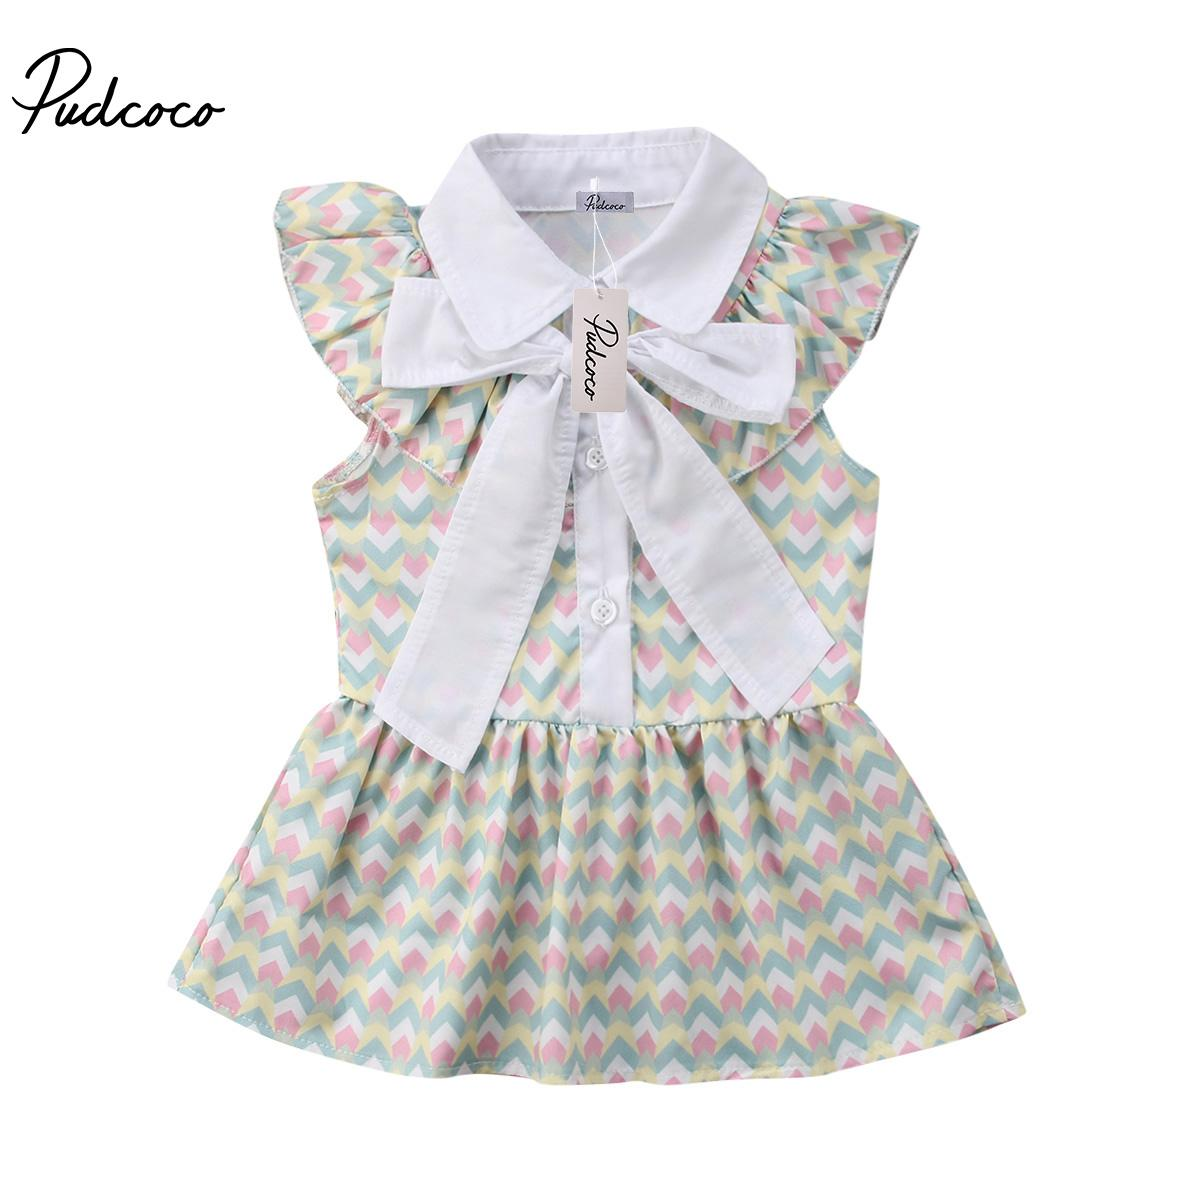 2018 Tout-petits enfants Baby Girls Party bowknot Pageant manches Tutu Dress Sundress Vêtements Robes 1-6Years